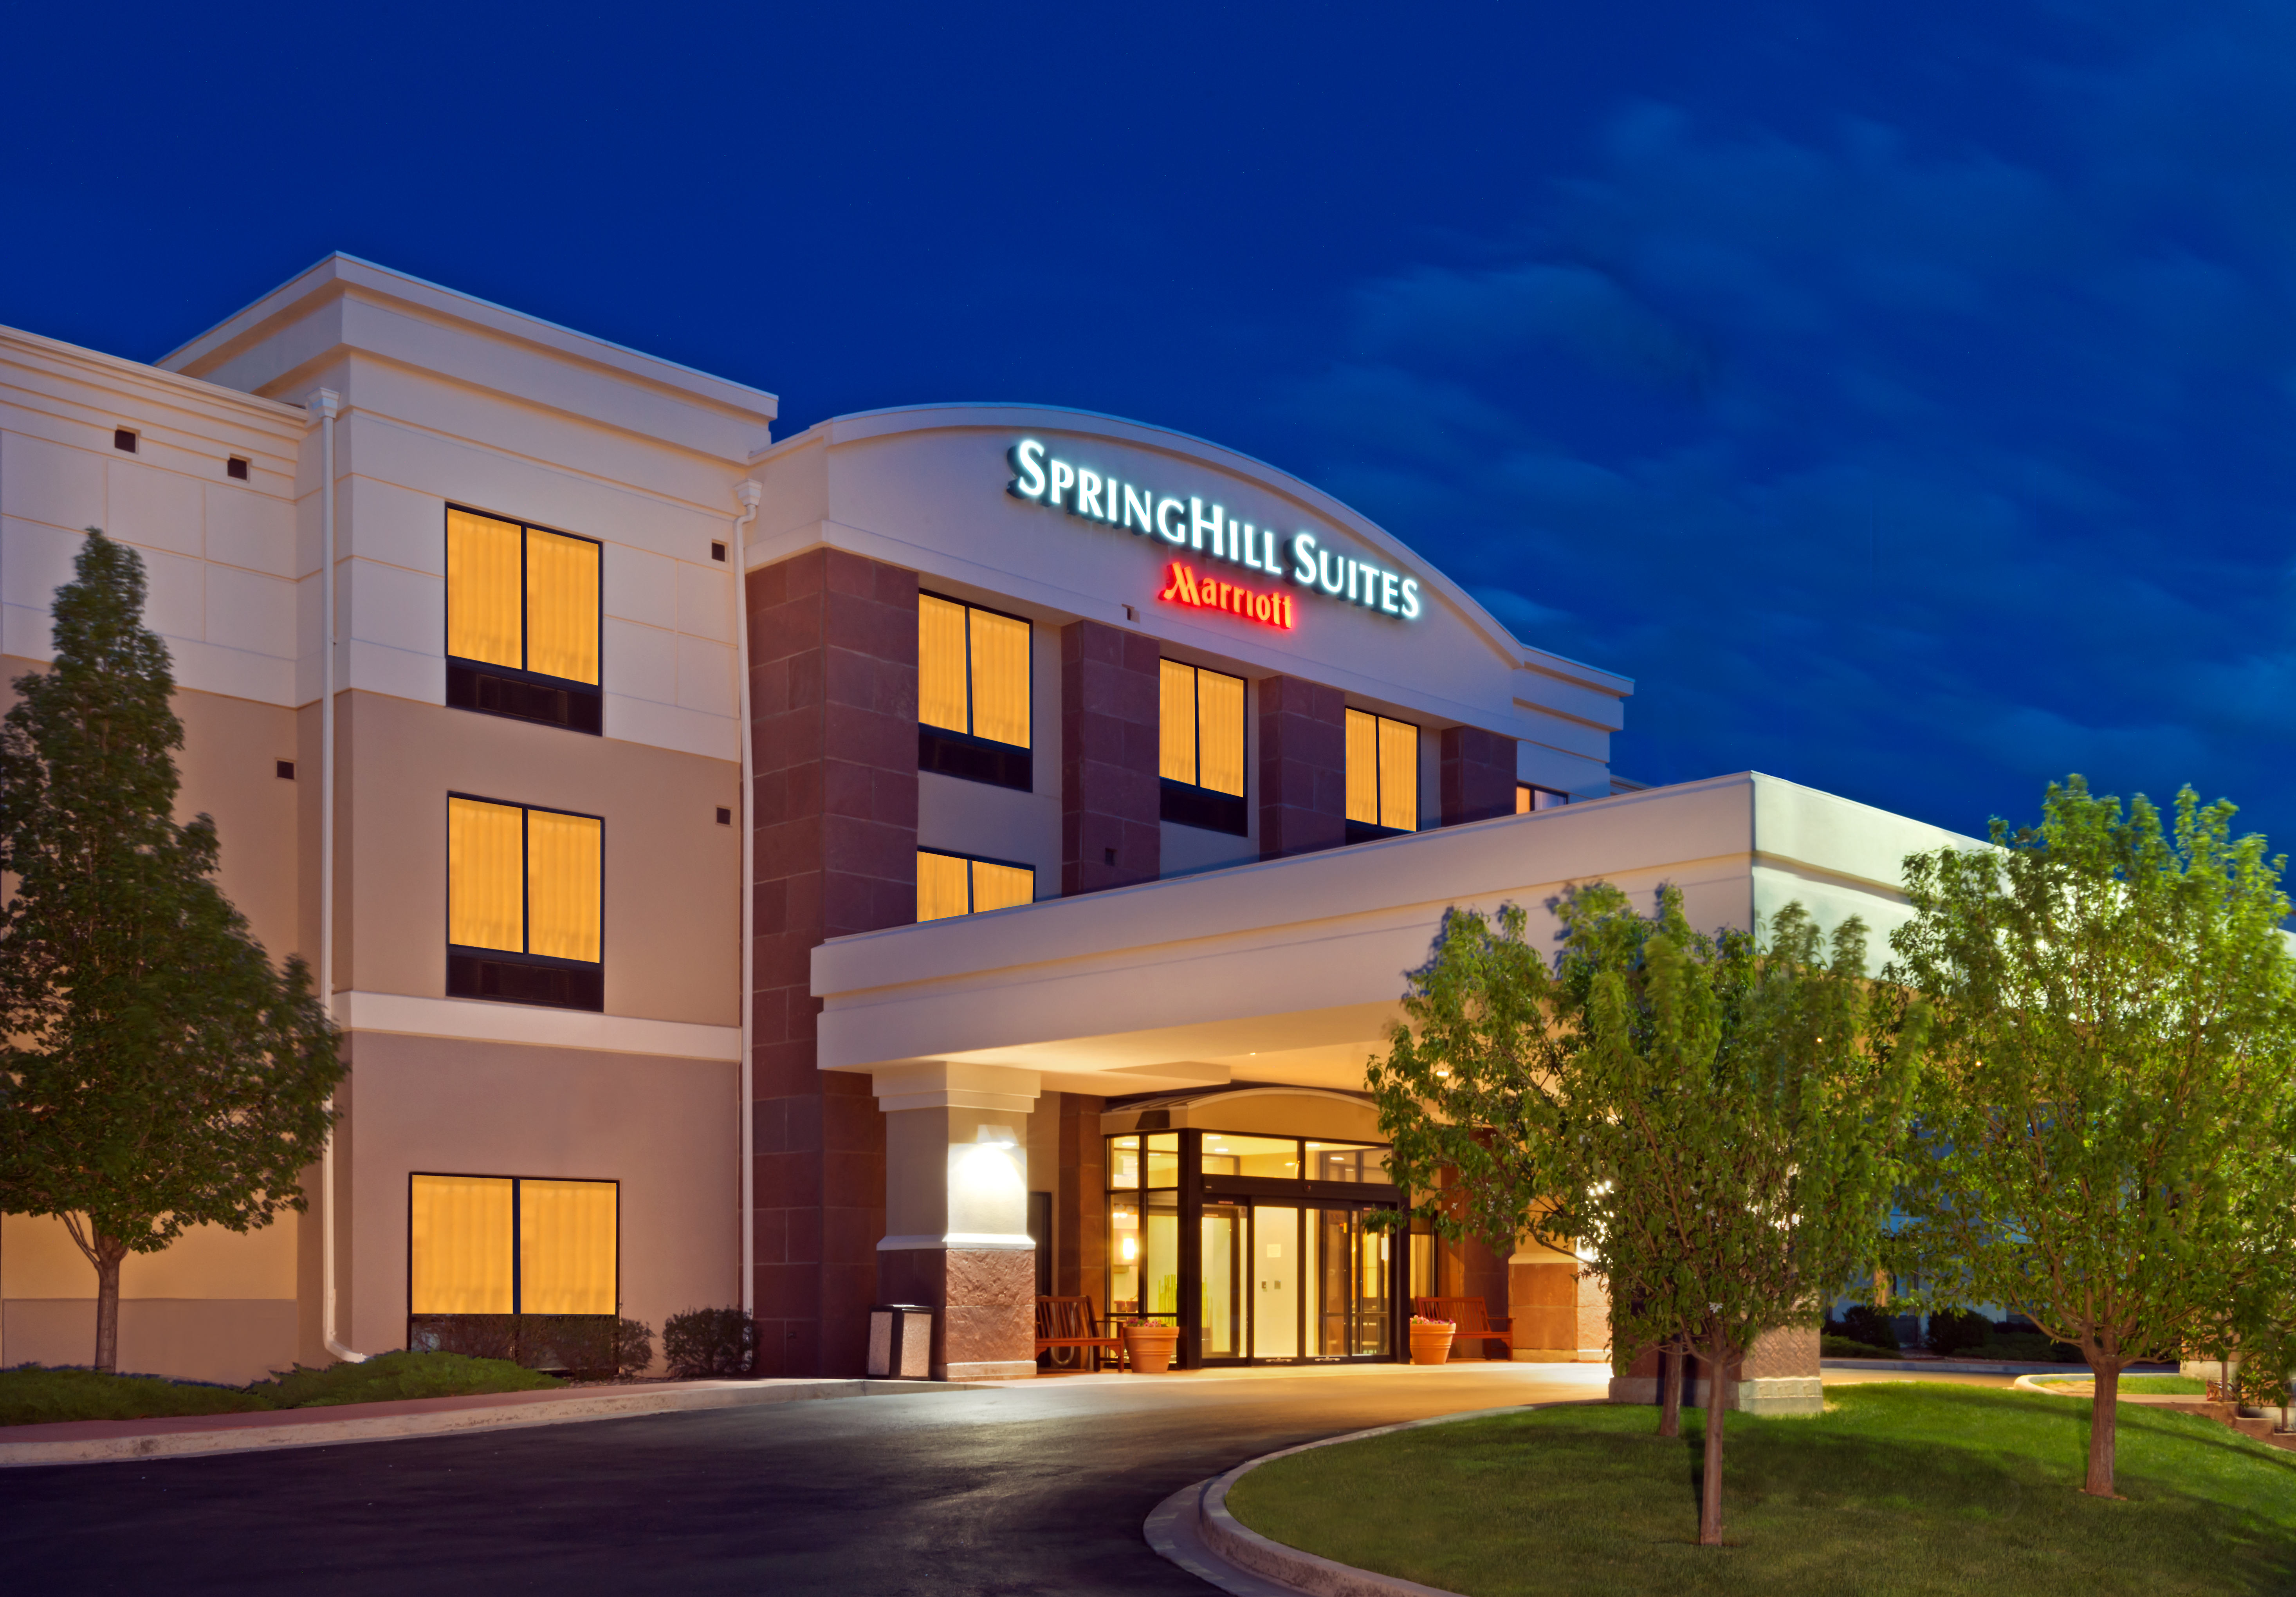 Boulder Eye Care & Surgery Center Doctors Springhill Suites by Marriott Pic - Hotels & Lodging